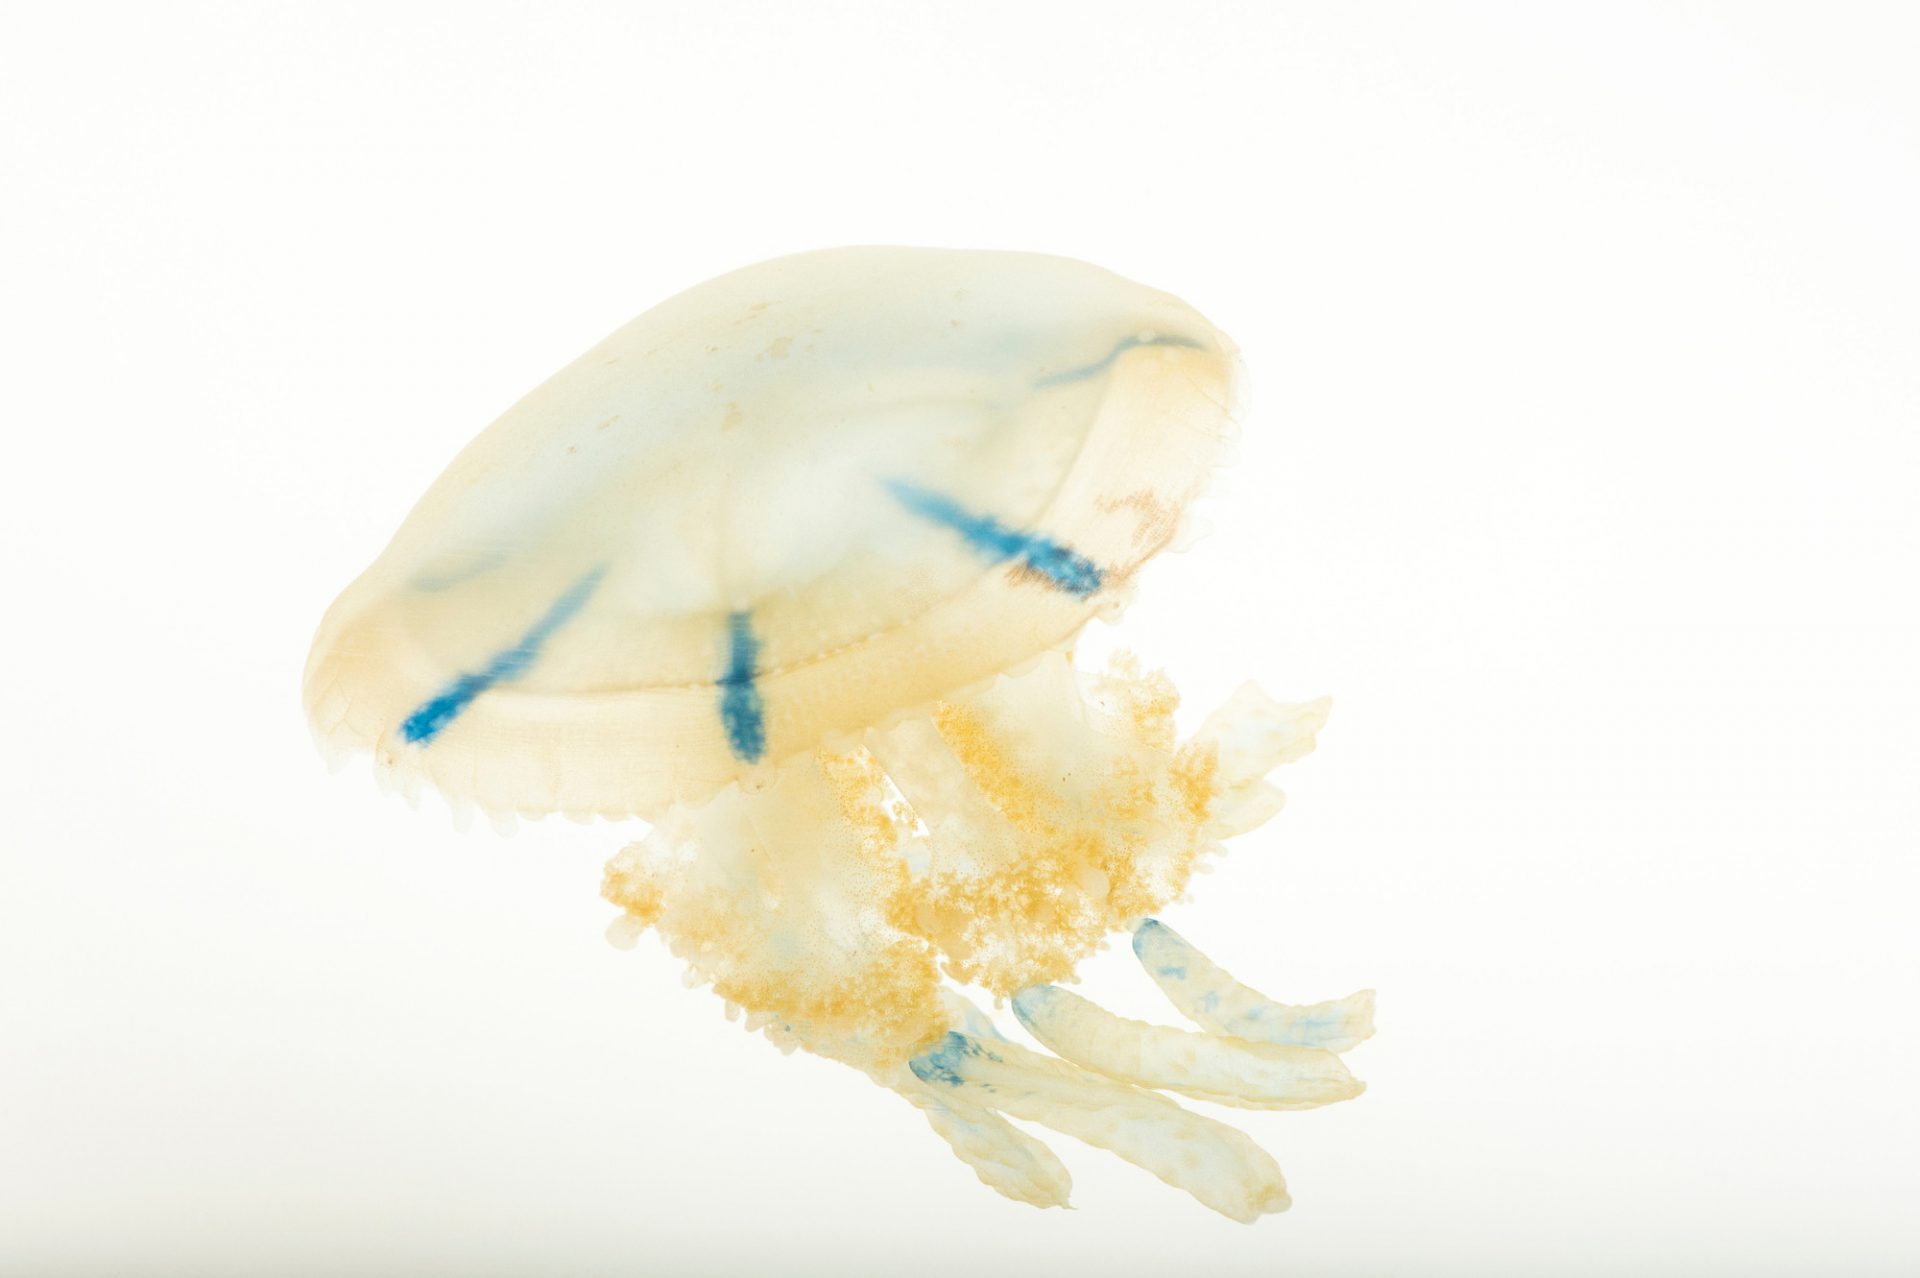 Picture of a Spotted jelly (Mastigias papua) at Omaha's Henry Doorly Zoo and Aquarium.